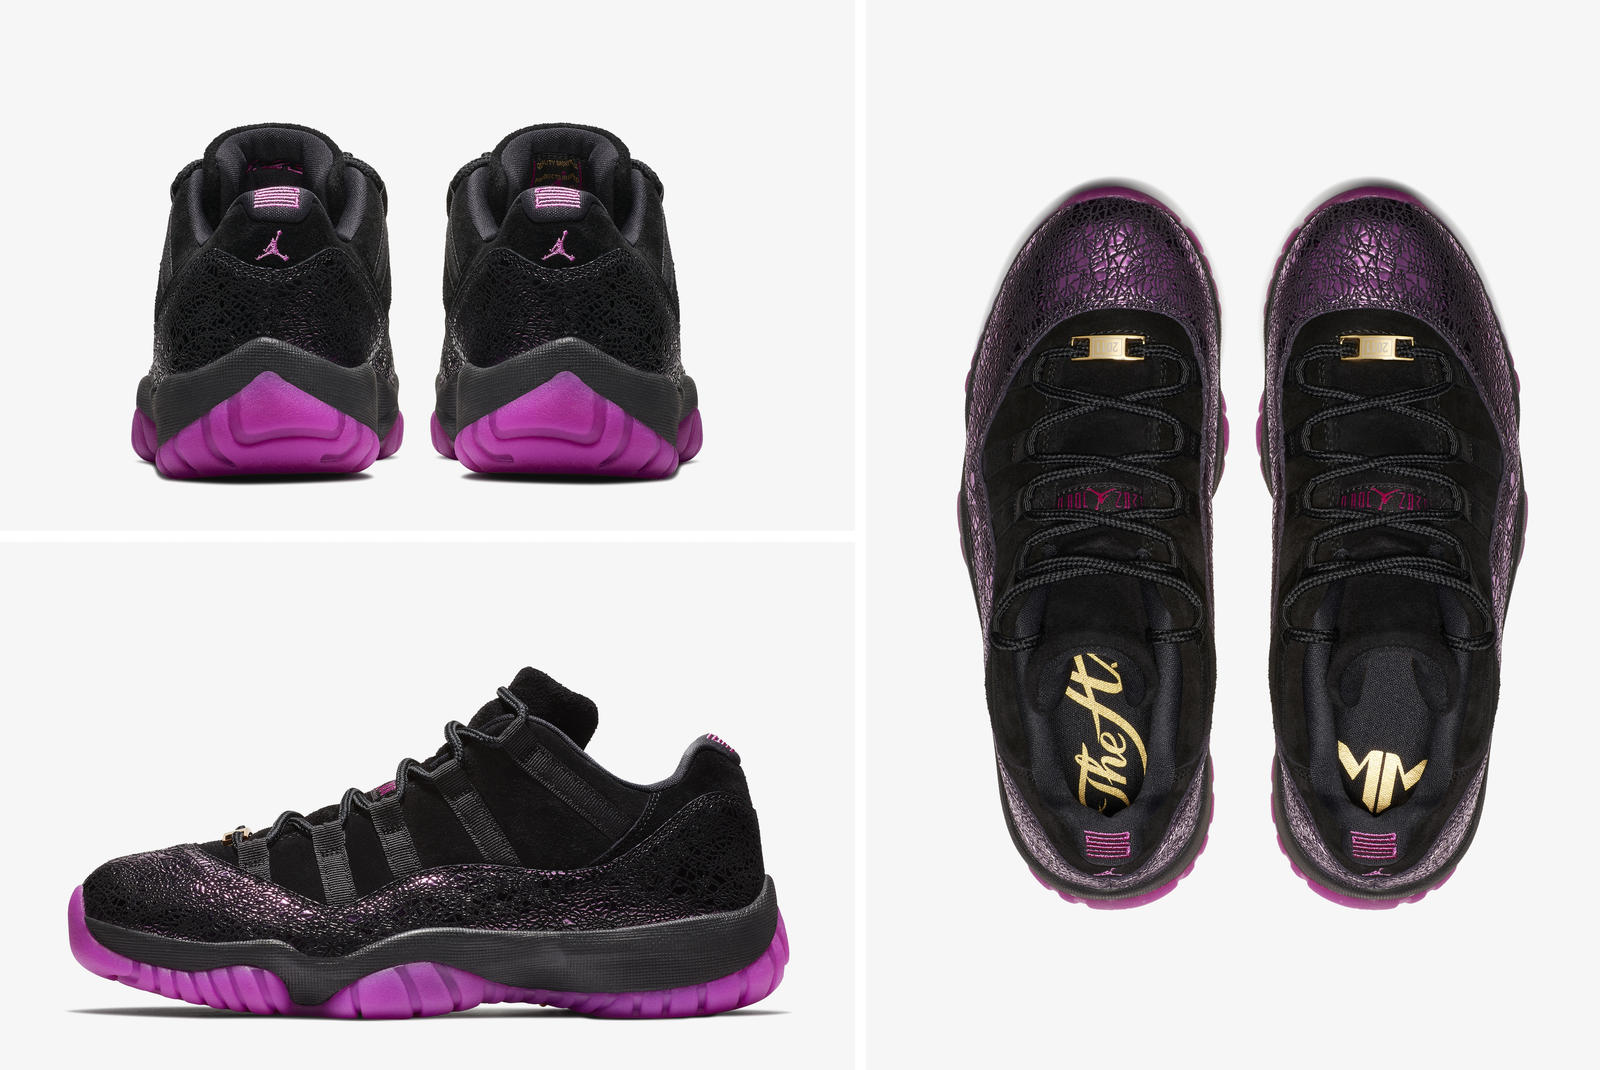 cheaper 6eeee 9bac5 free shipping air jordan 11 retro 356ab 4242f  order in a colorway paying  tribute to maya moores swift acendence in the pro ranks the